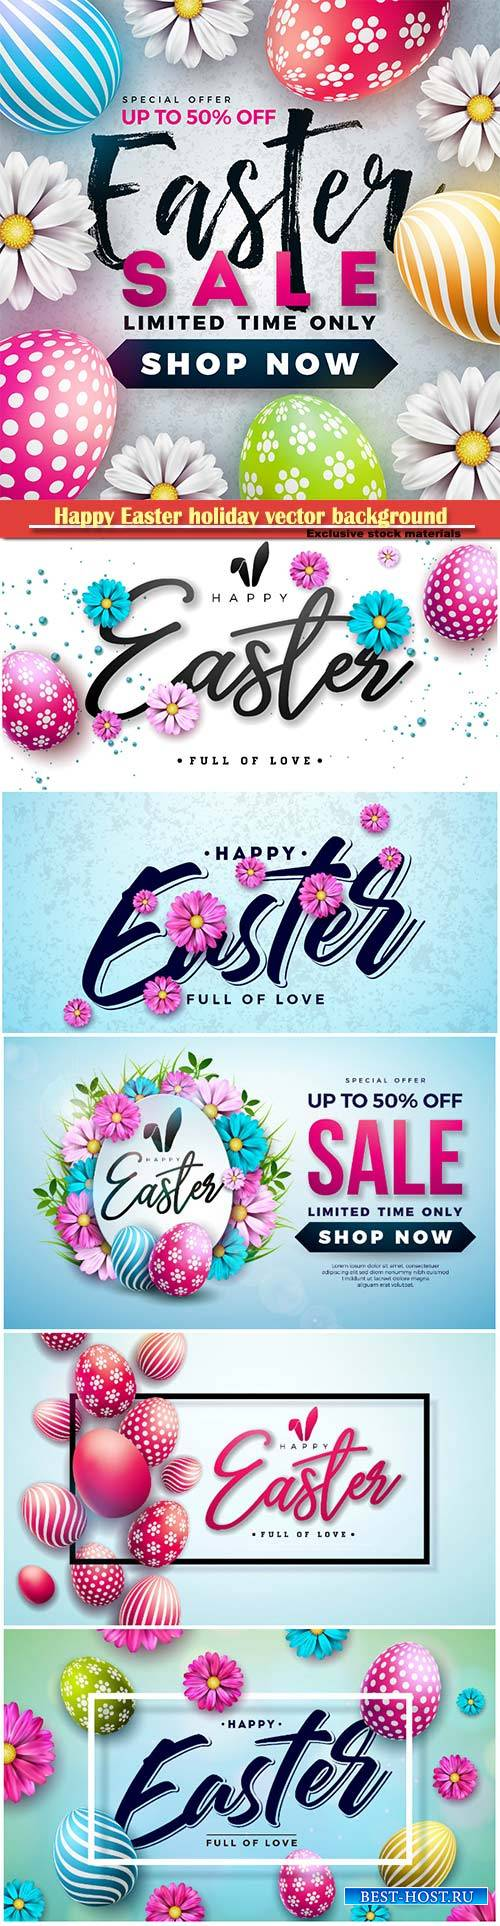 Easter sale vector illustration with eggs and spring flower